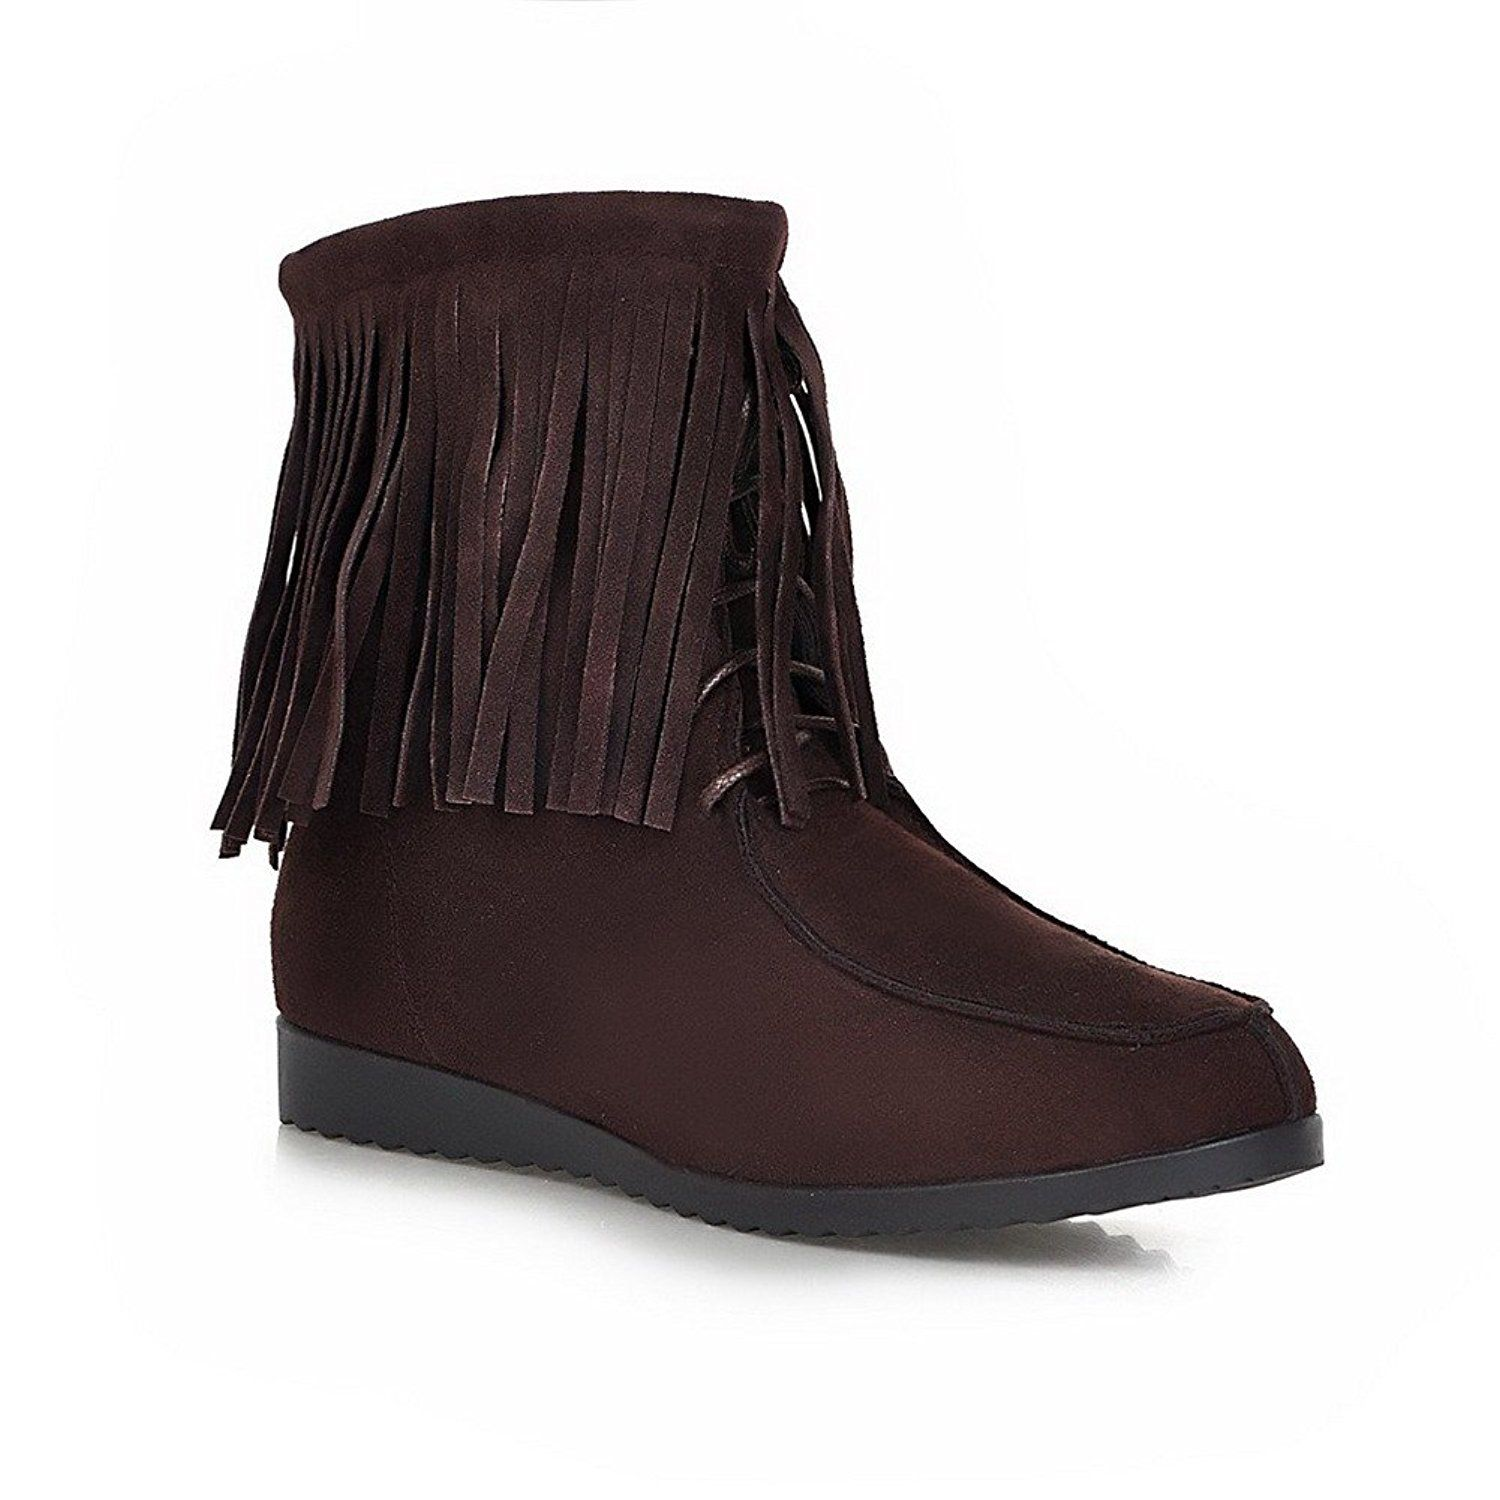 Women's Frosted Zipper Round Closed Toe Kitten-Heels Low-Top Boots with Tassels